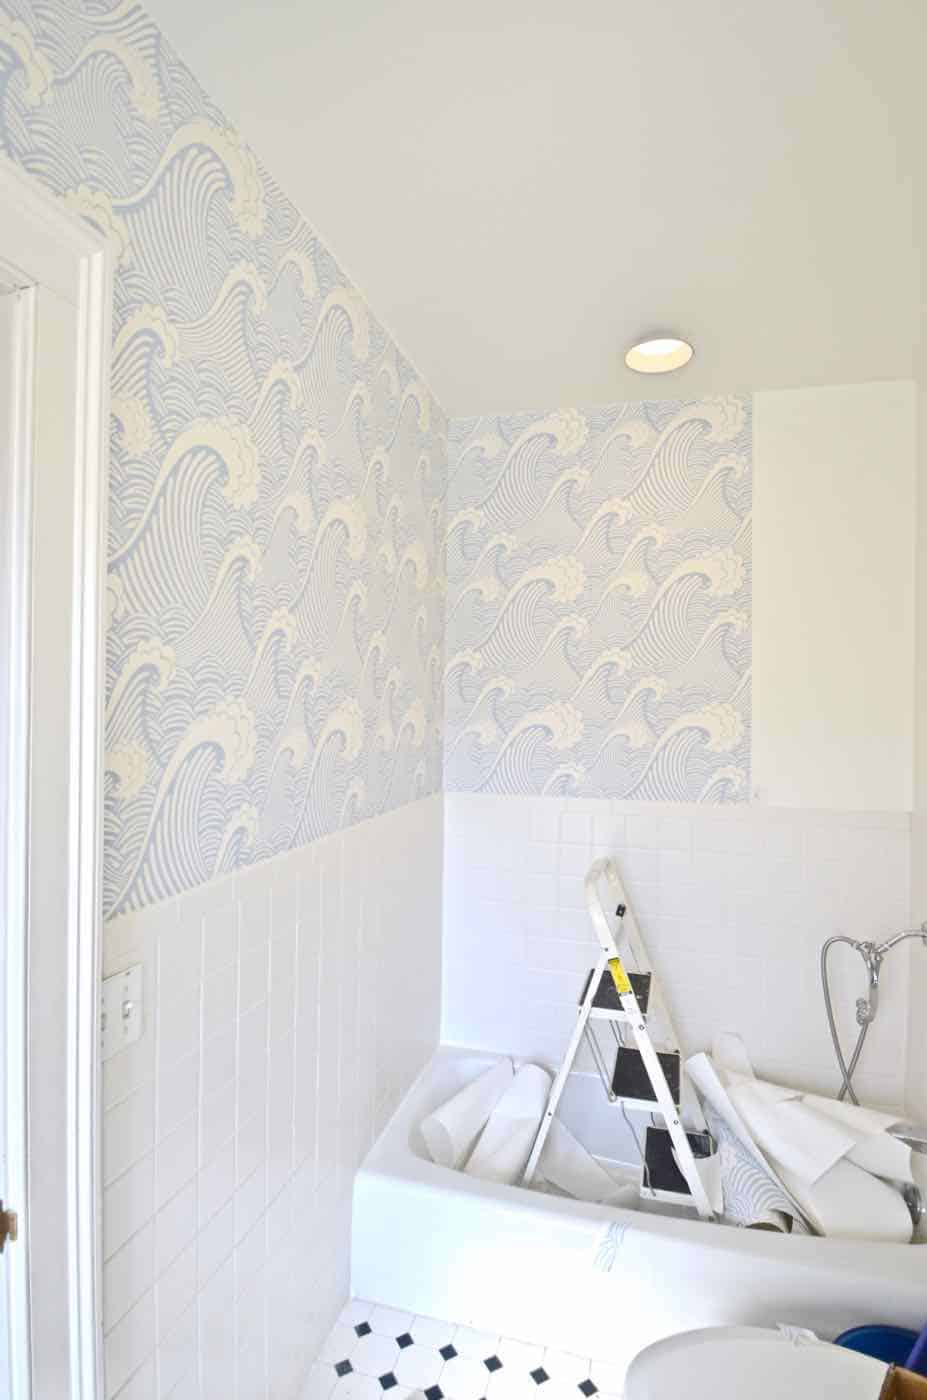 How To Removable Wallpaper  At Charlottes House